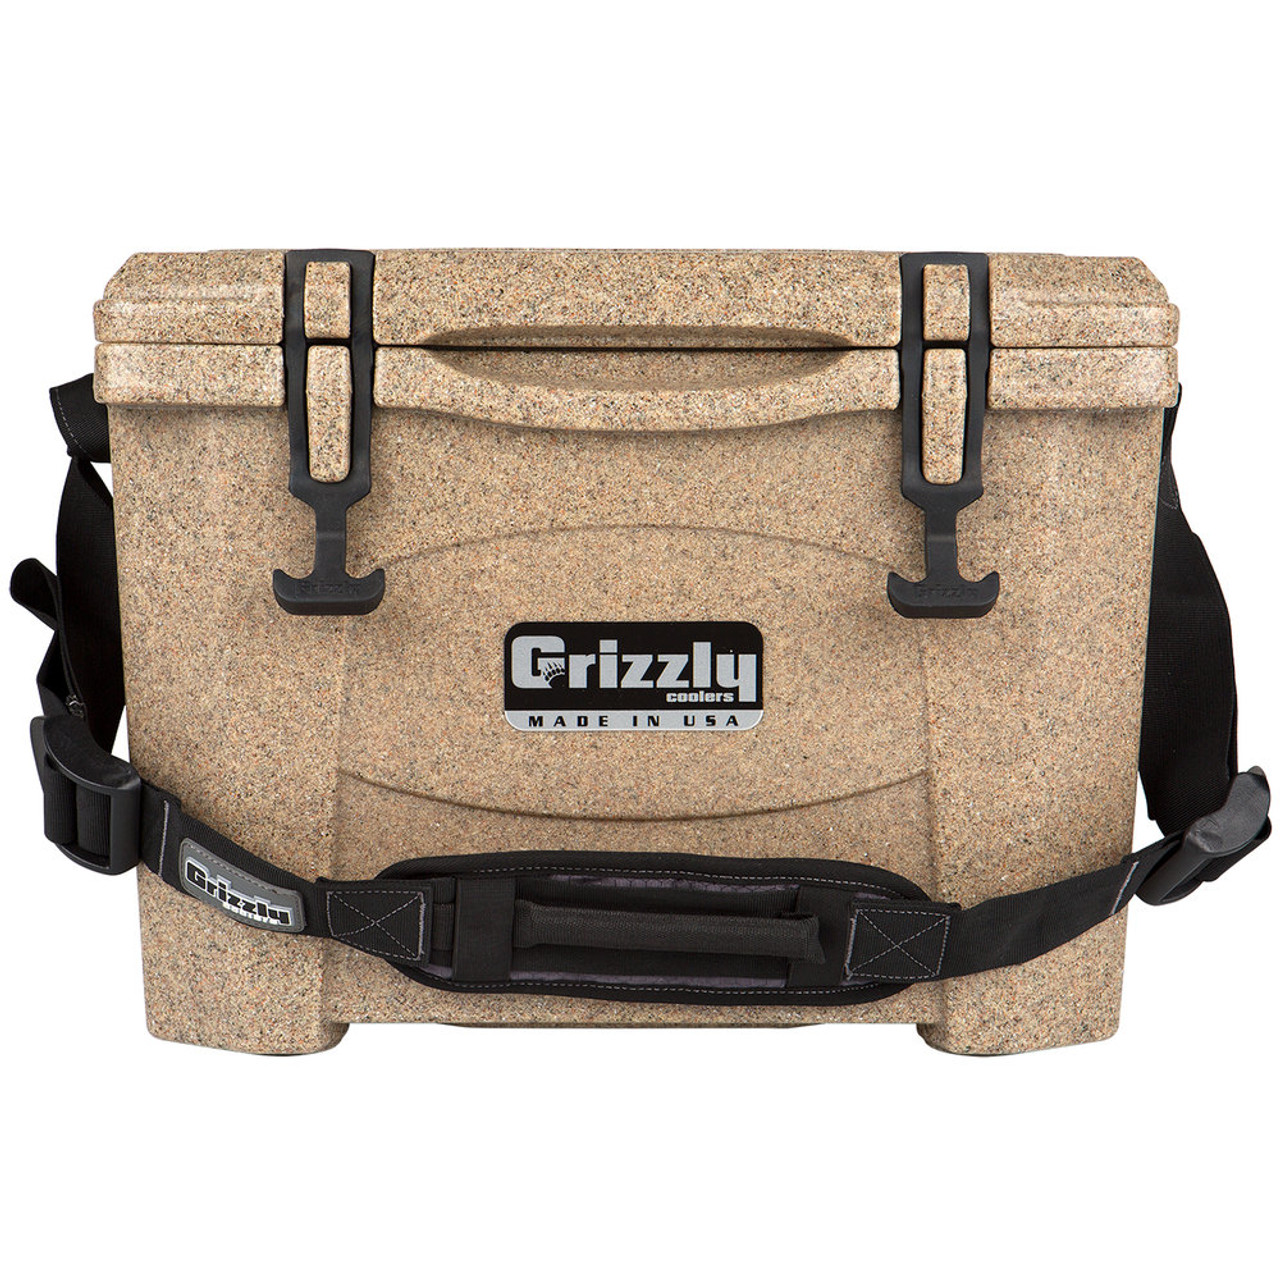 Grizzly Coolers 15 Quart Rotomolded Cooler, Sandstone